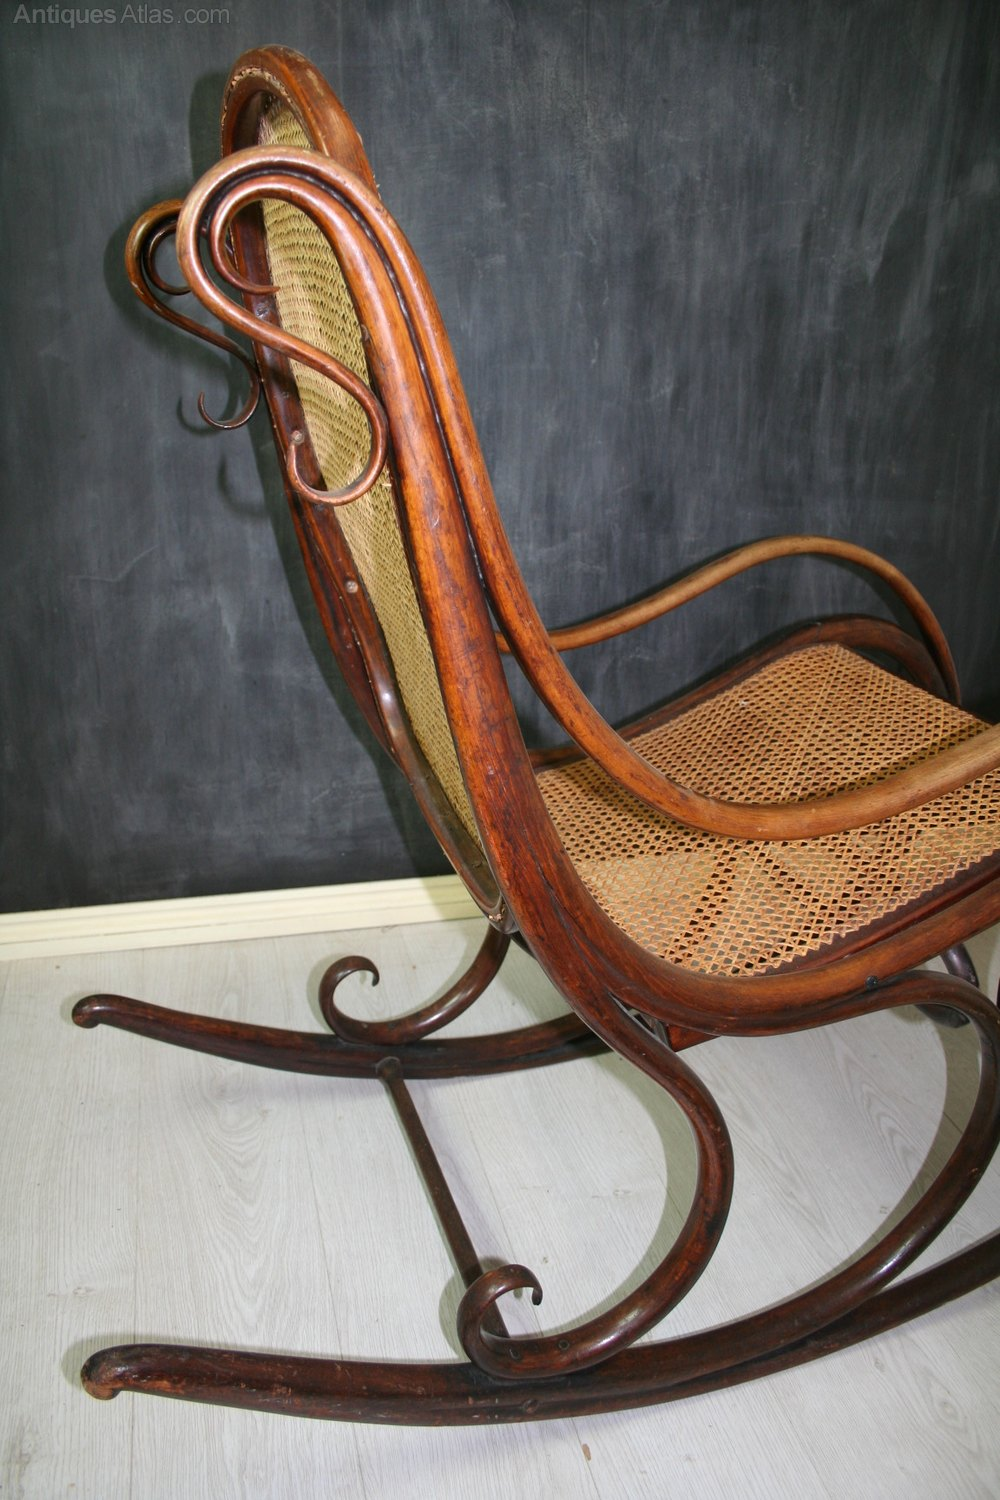 rocking chair is the forerunner for all subsequent bentwood rocking